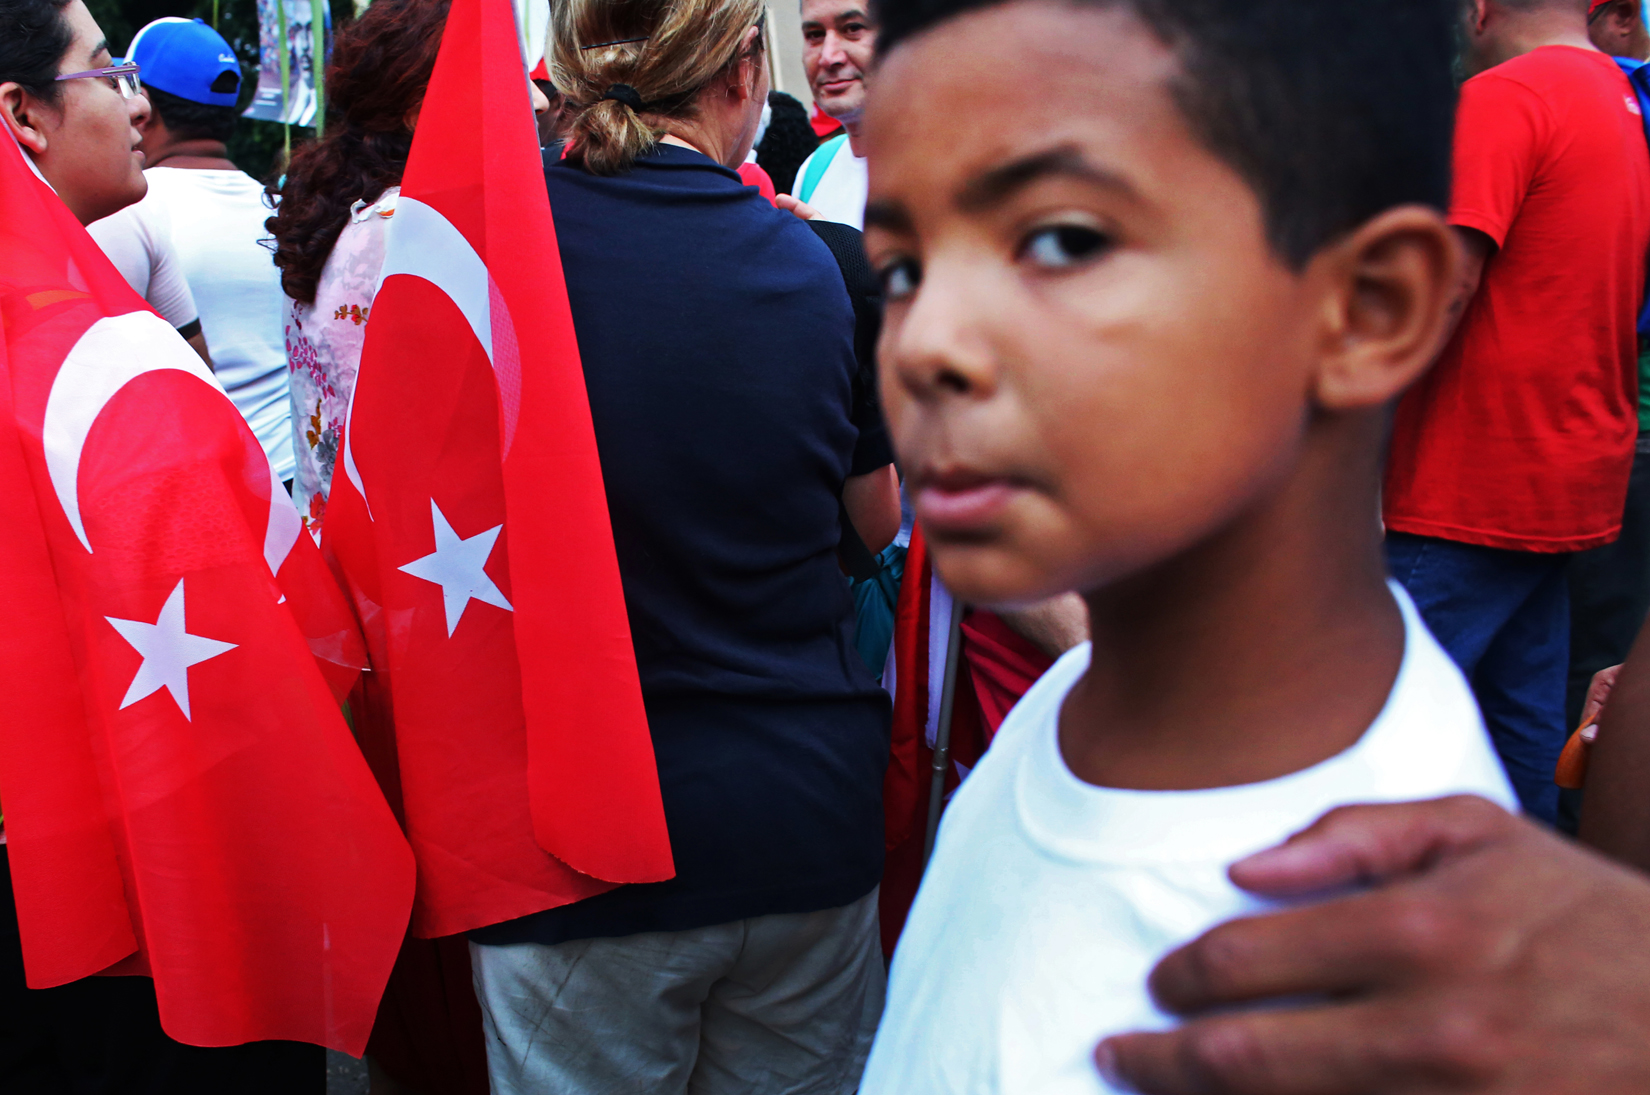 Turkish participants march during the 1st of May Labor Day March in Havana, Cuba, on May 01, 2015. In Cuba, the day known as Día del Trabajo is a call for people to march in the streets in show of support to their local socialist government and the Cuban Revolution. Guests from many countries and social organizations worldwide are known to join the march. Participants have noted that while attendance is not mandatory, absence from the march is usually noticed and discouraged.